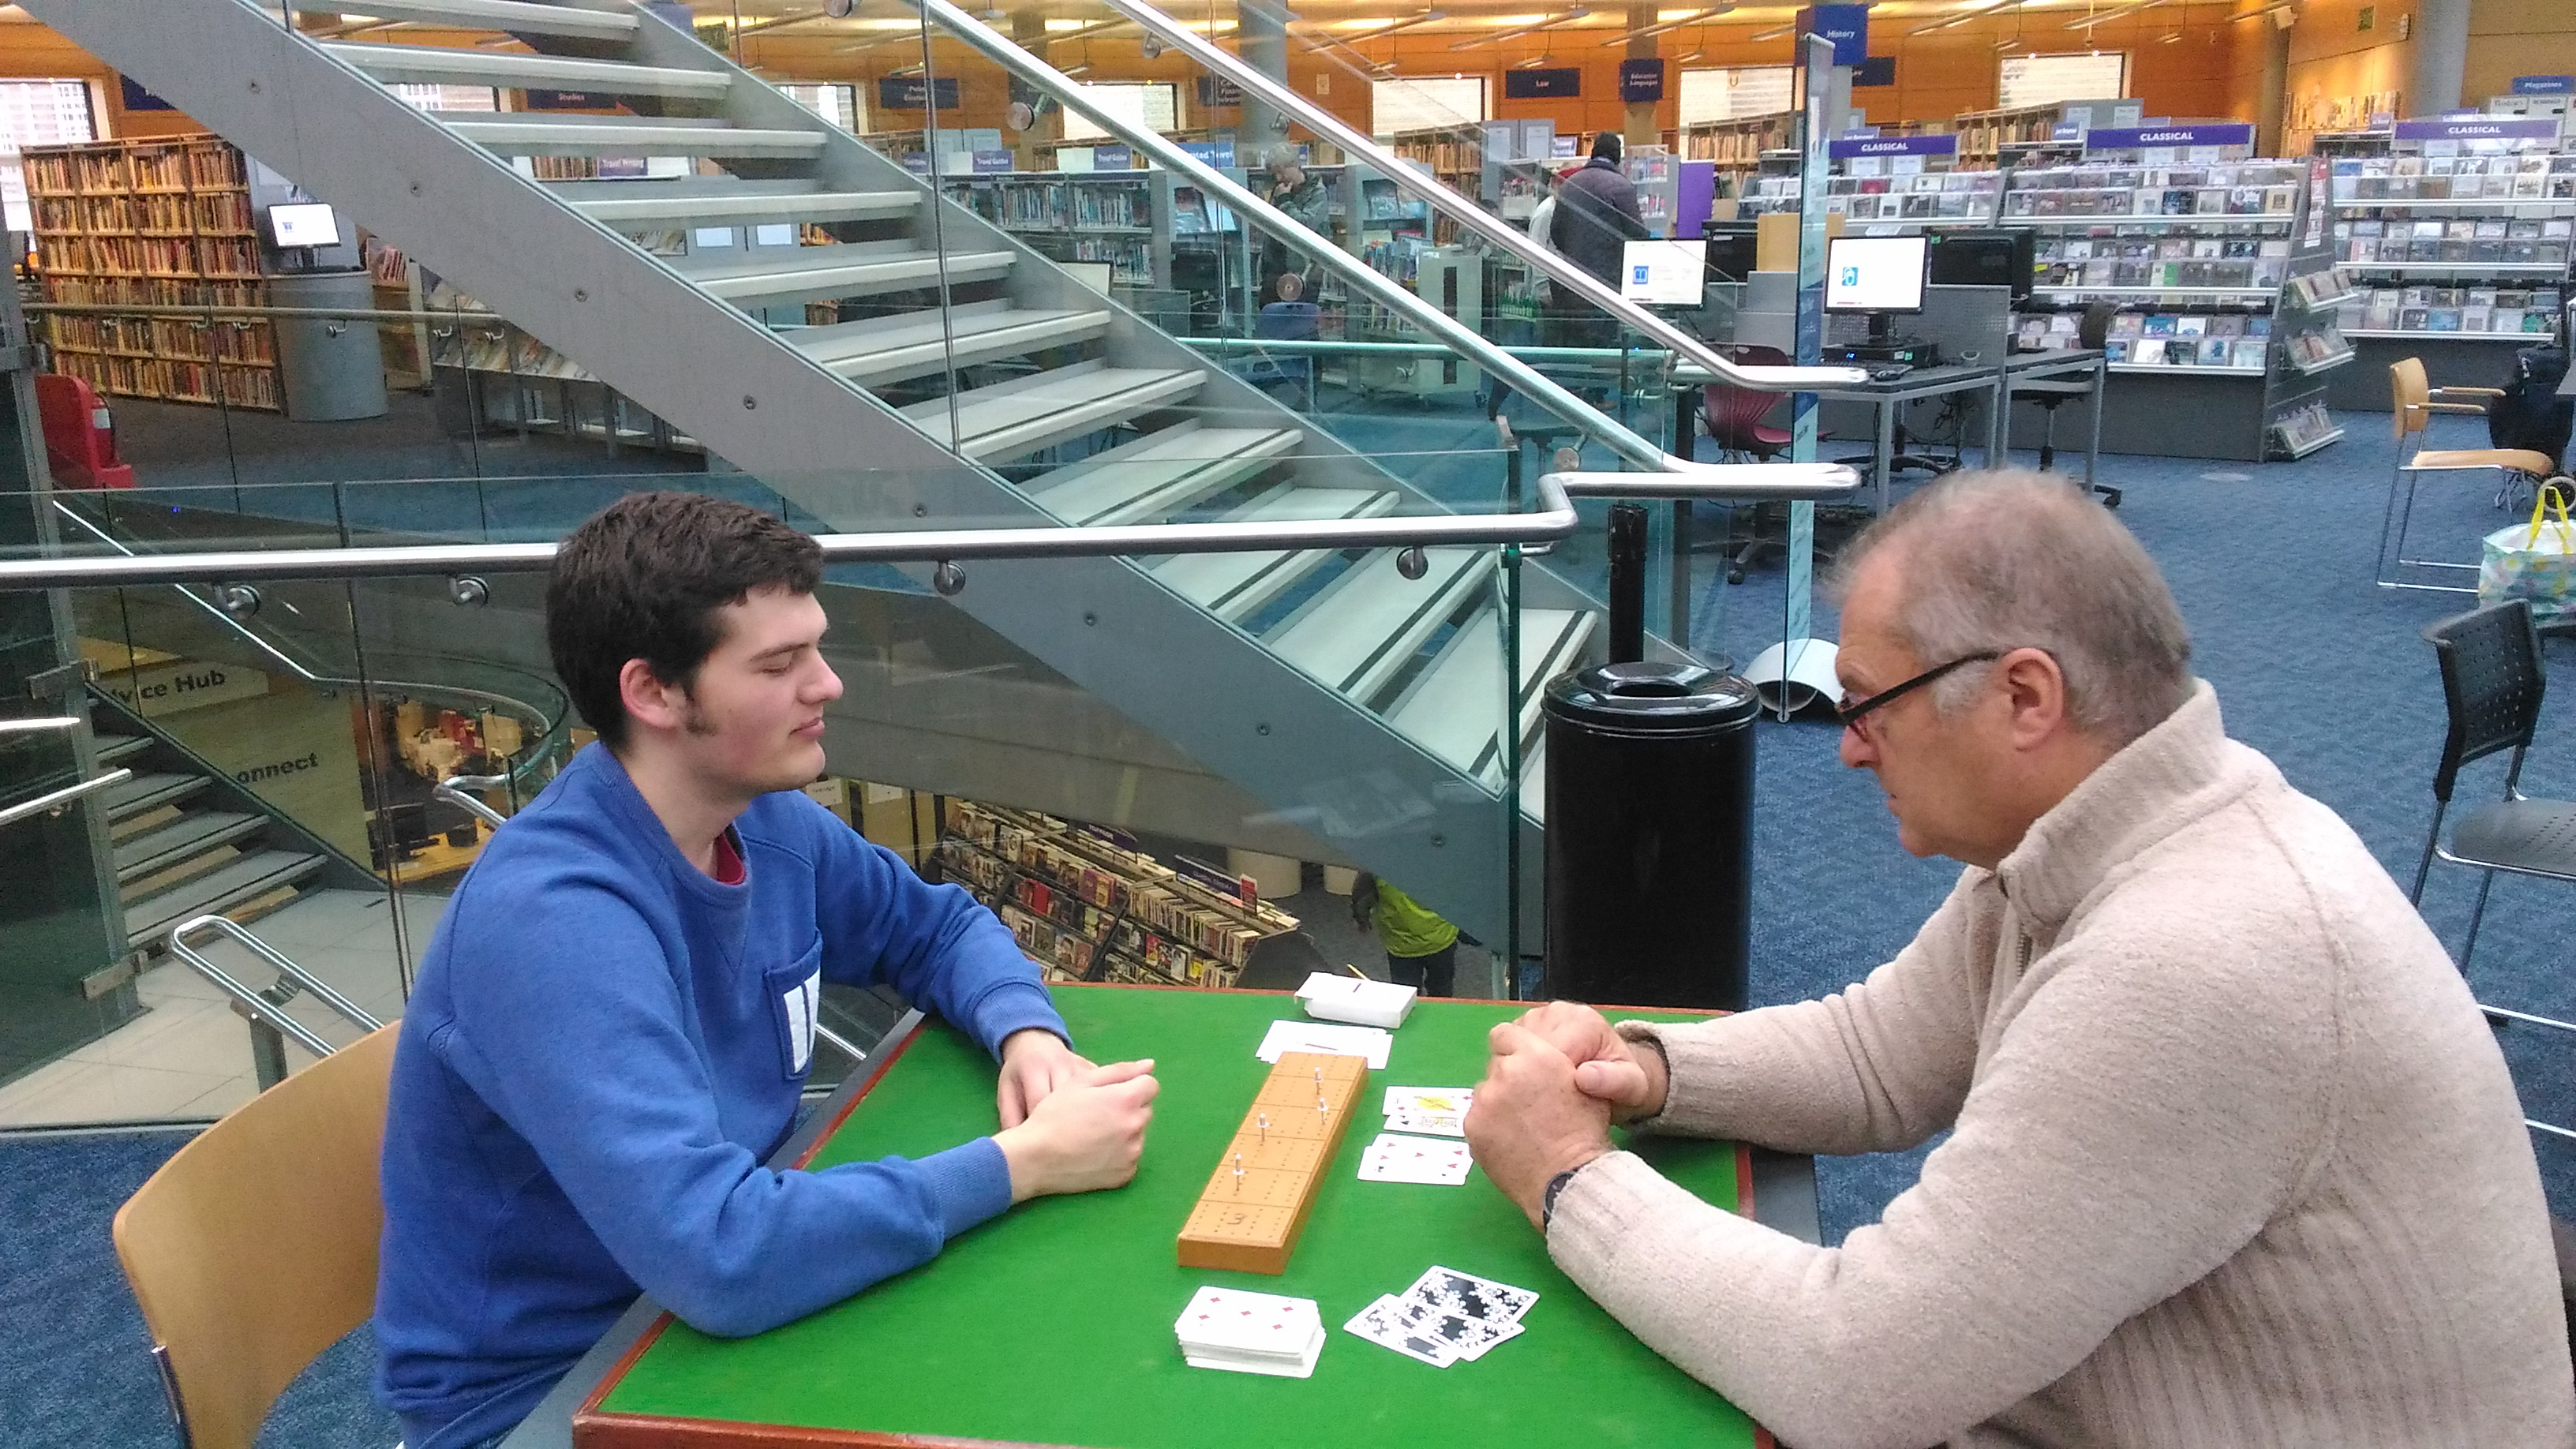 Library users playing cards